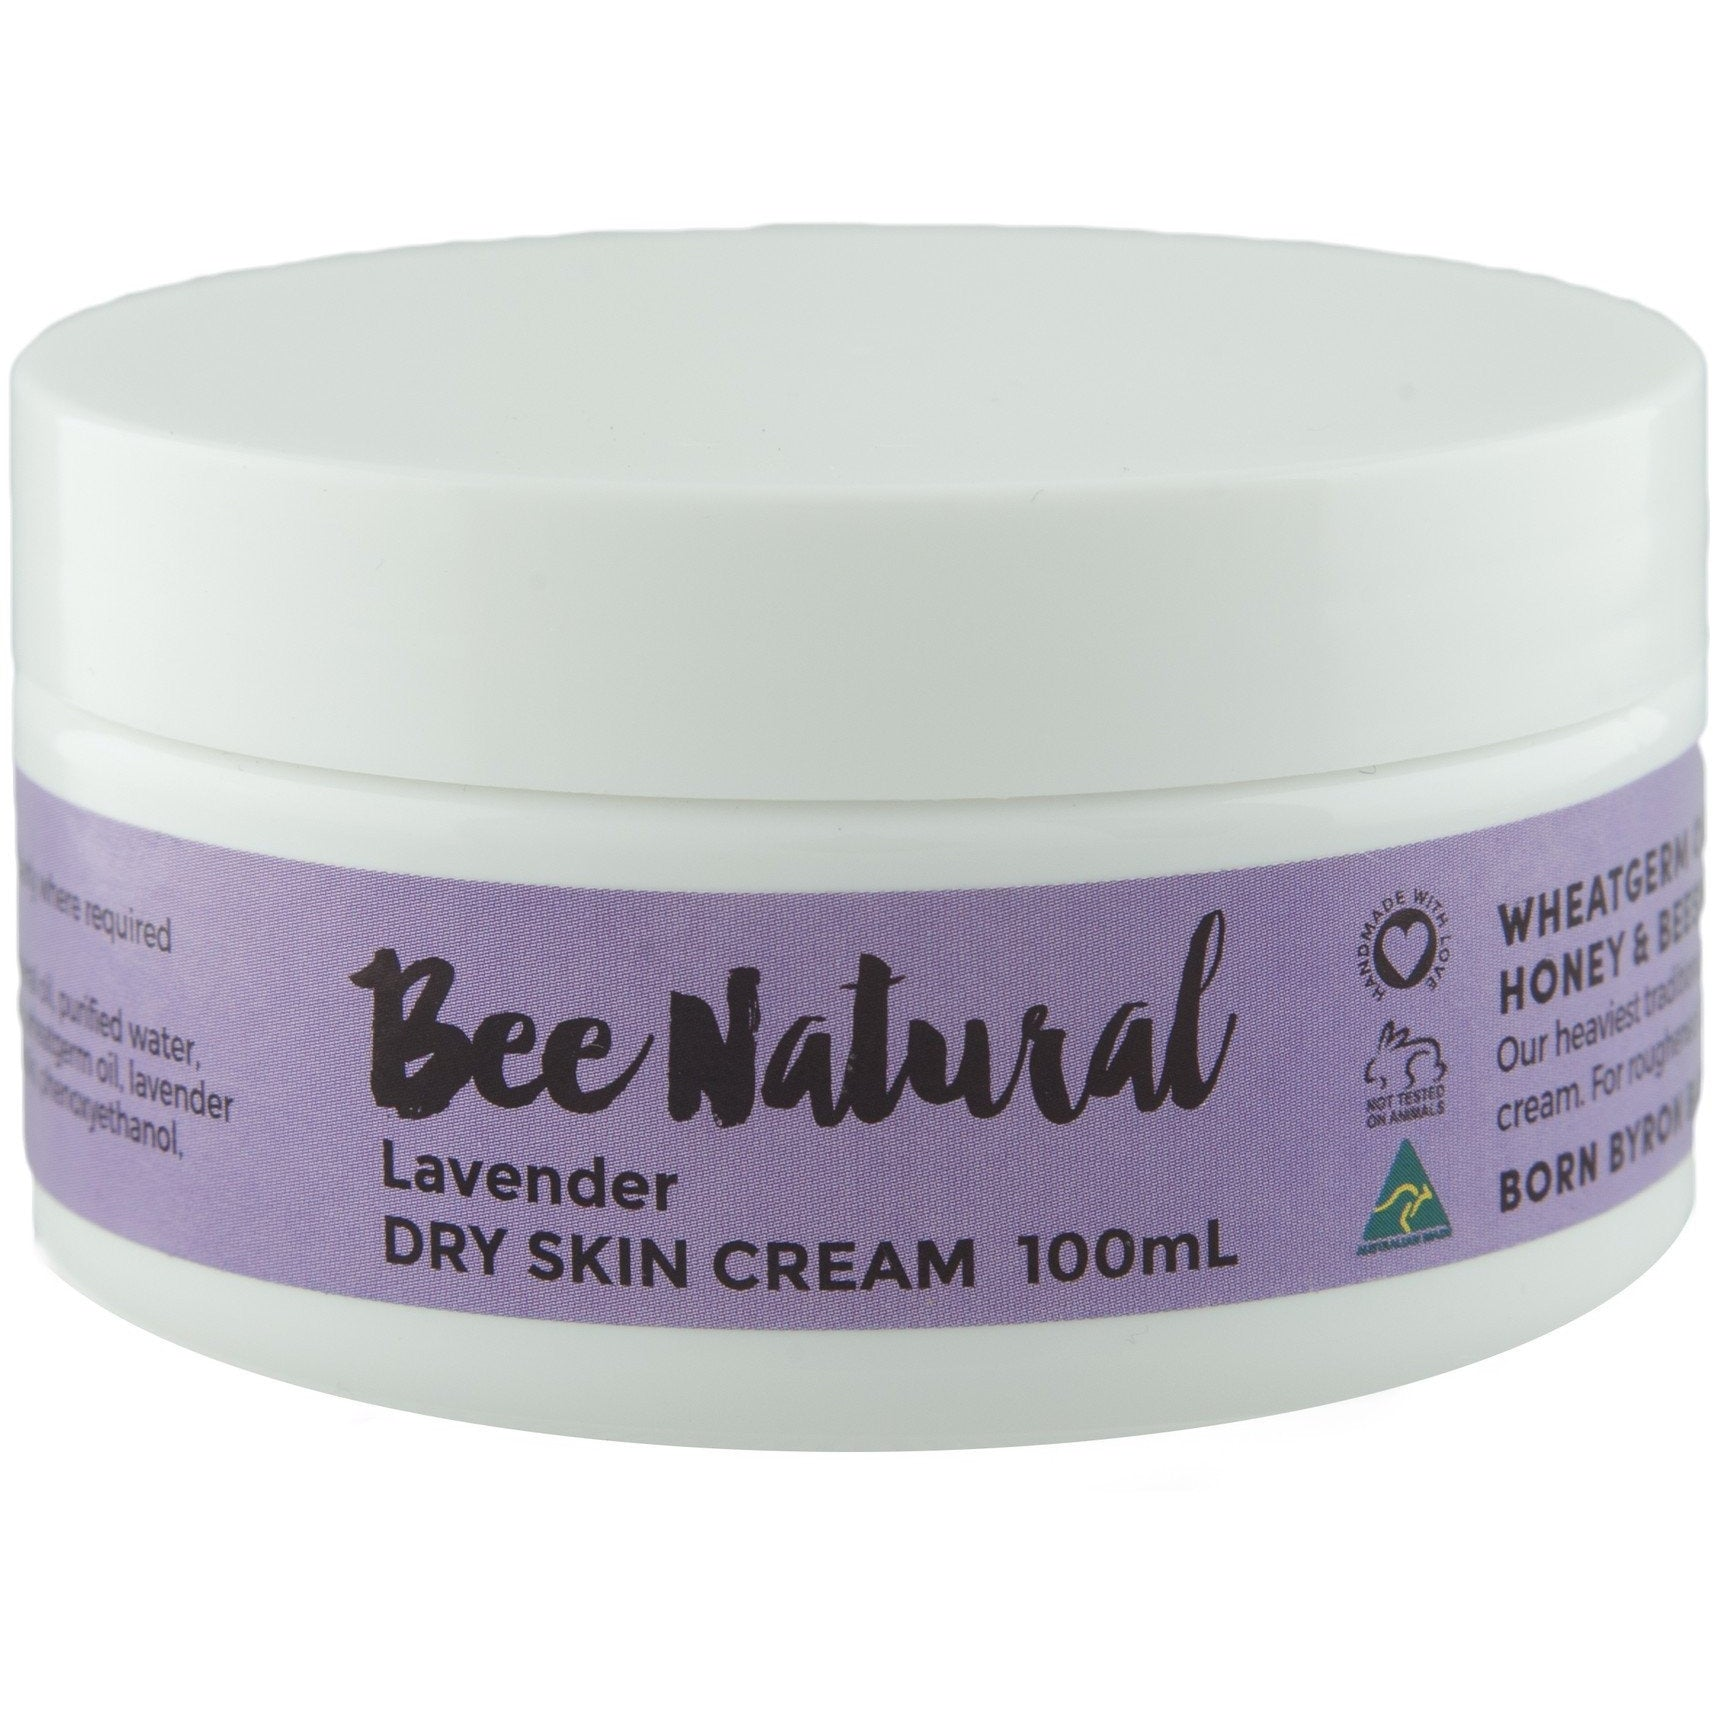 Lavender DRY SKIN CREAM - various sizes